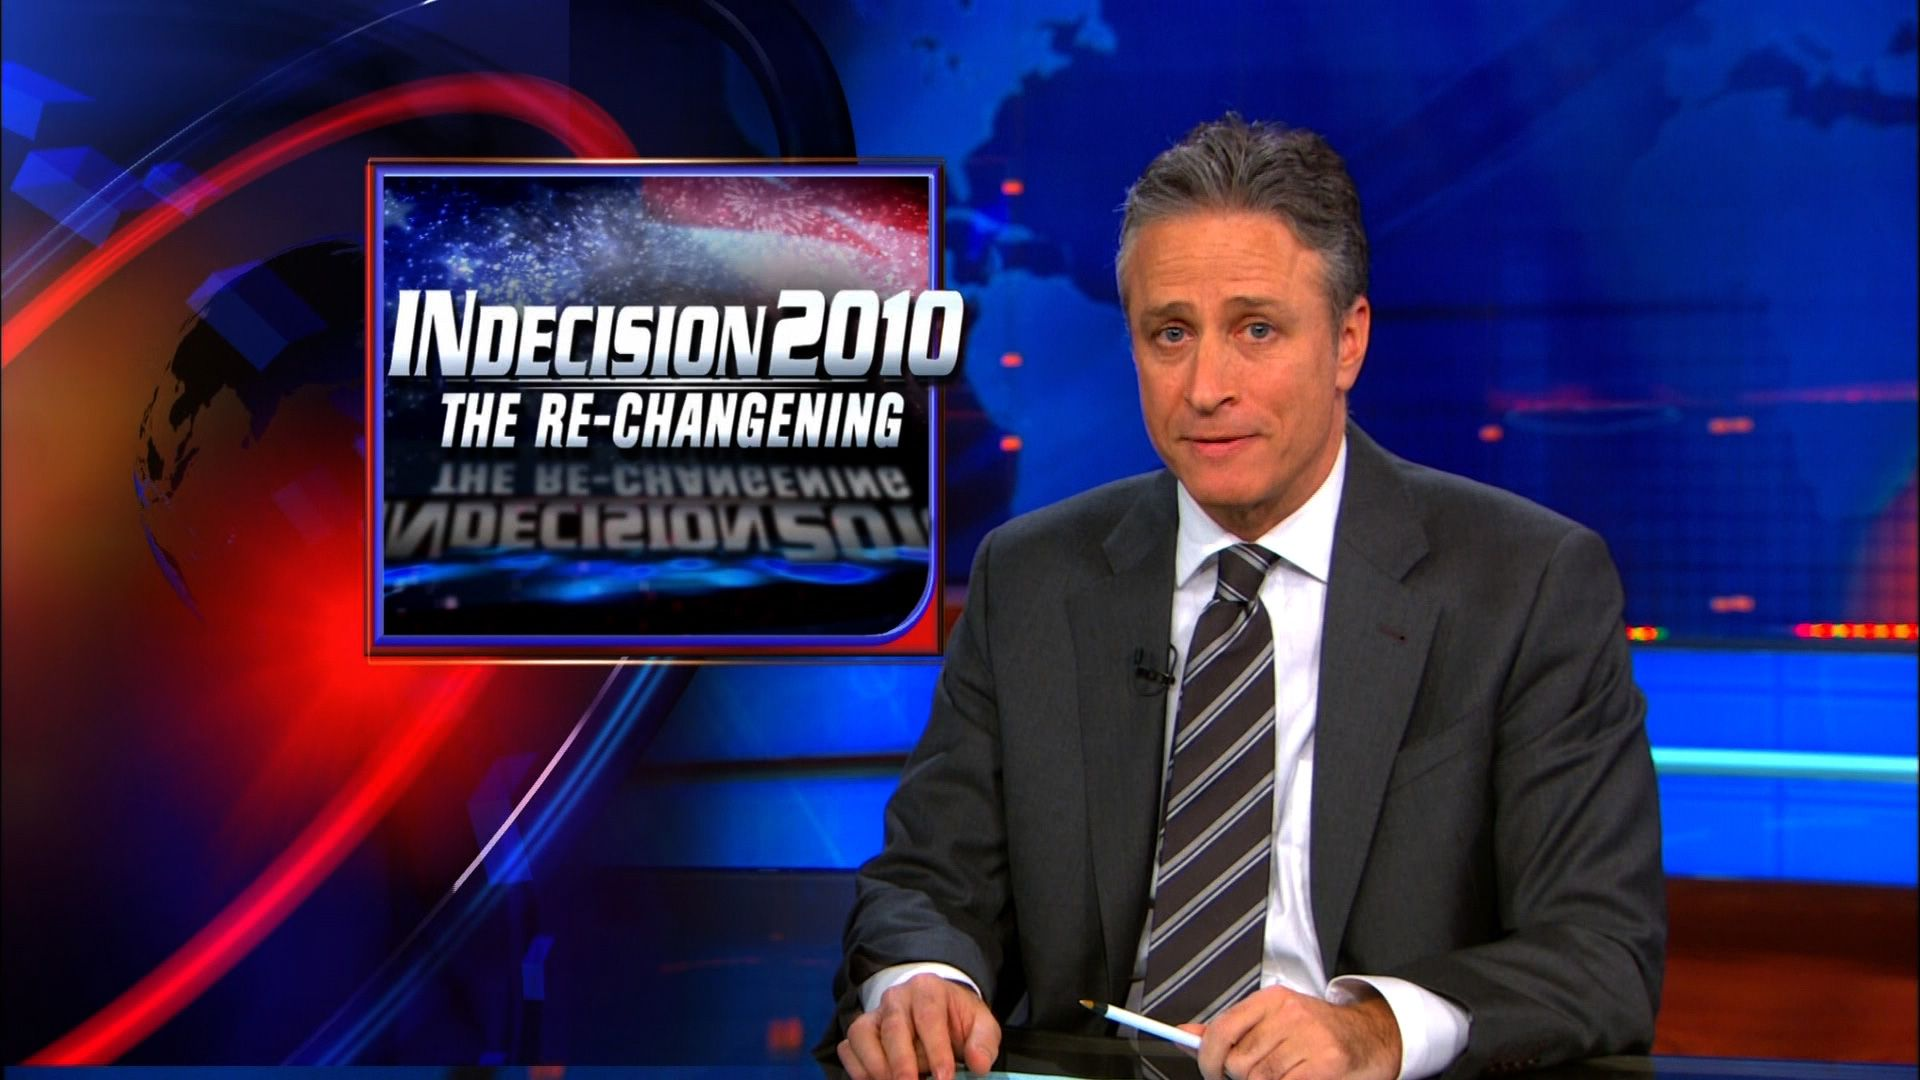 Indecision 2010 - The Re-Changening - The Daily Show with Jon ...